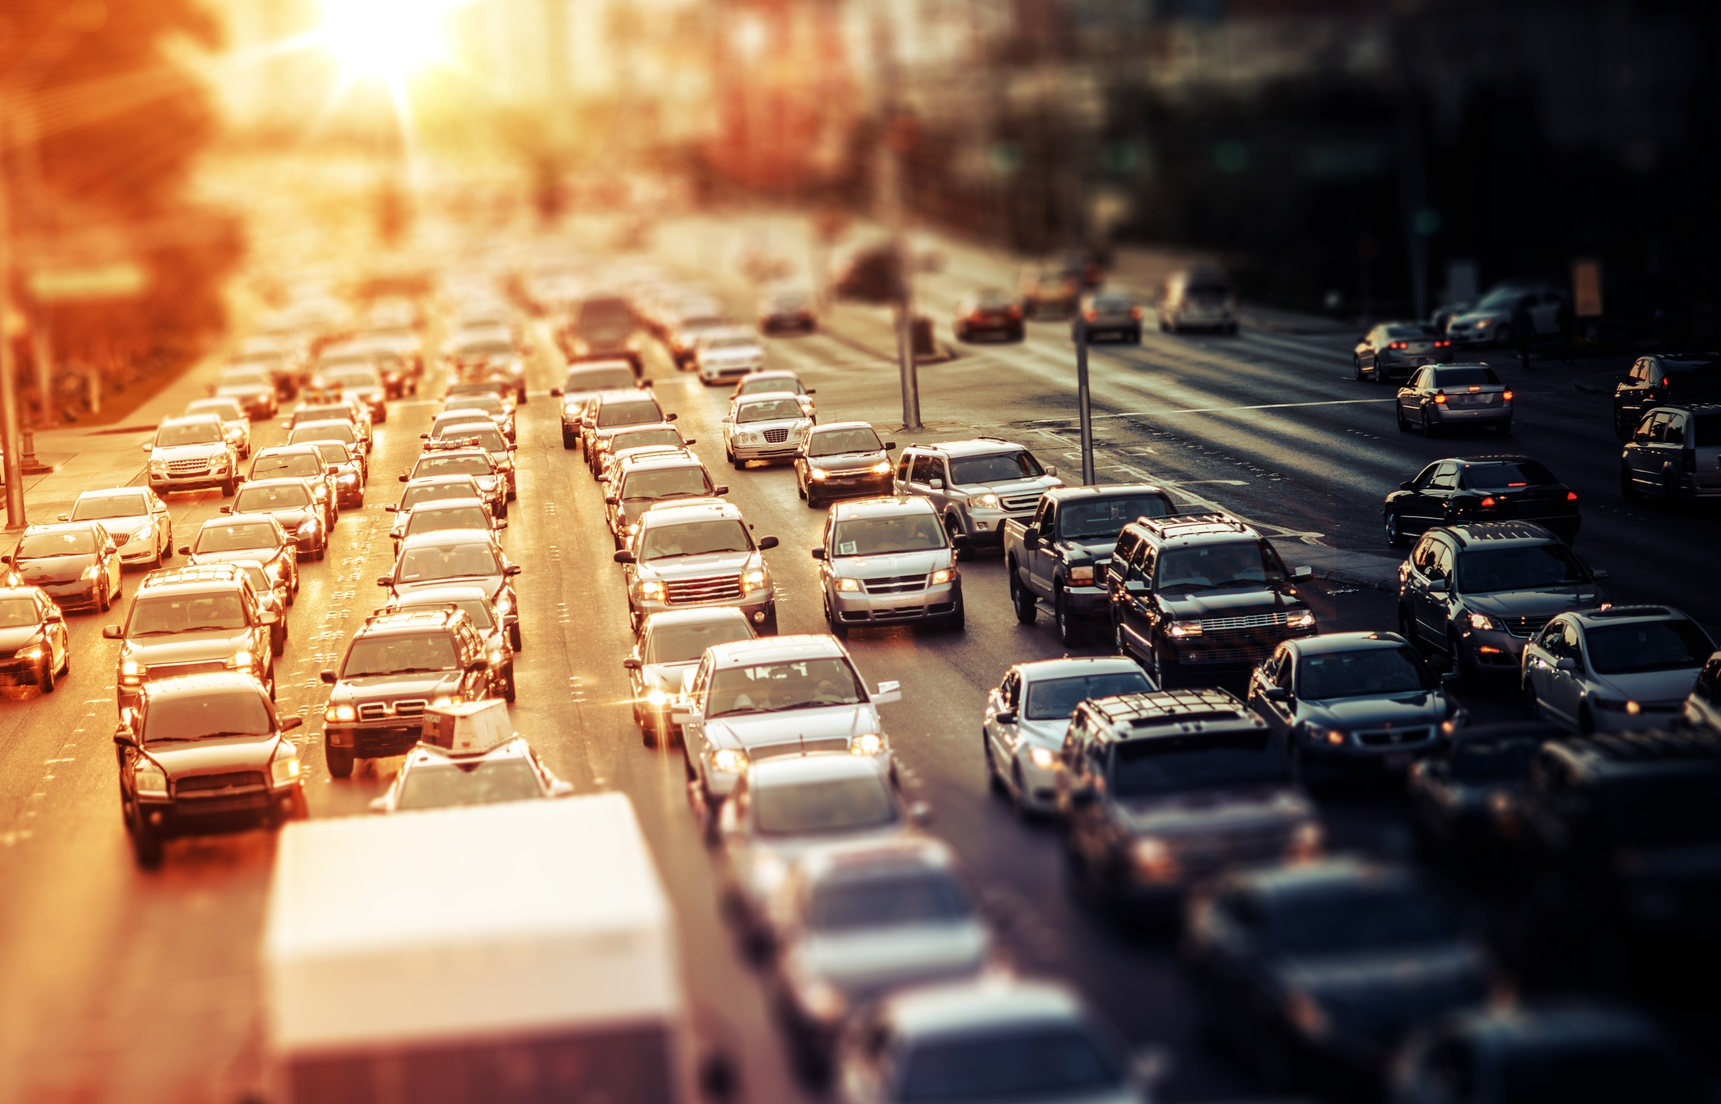 Traffic Jam at the Printer? Look To Your Mix Of Document Technologies